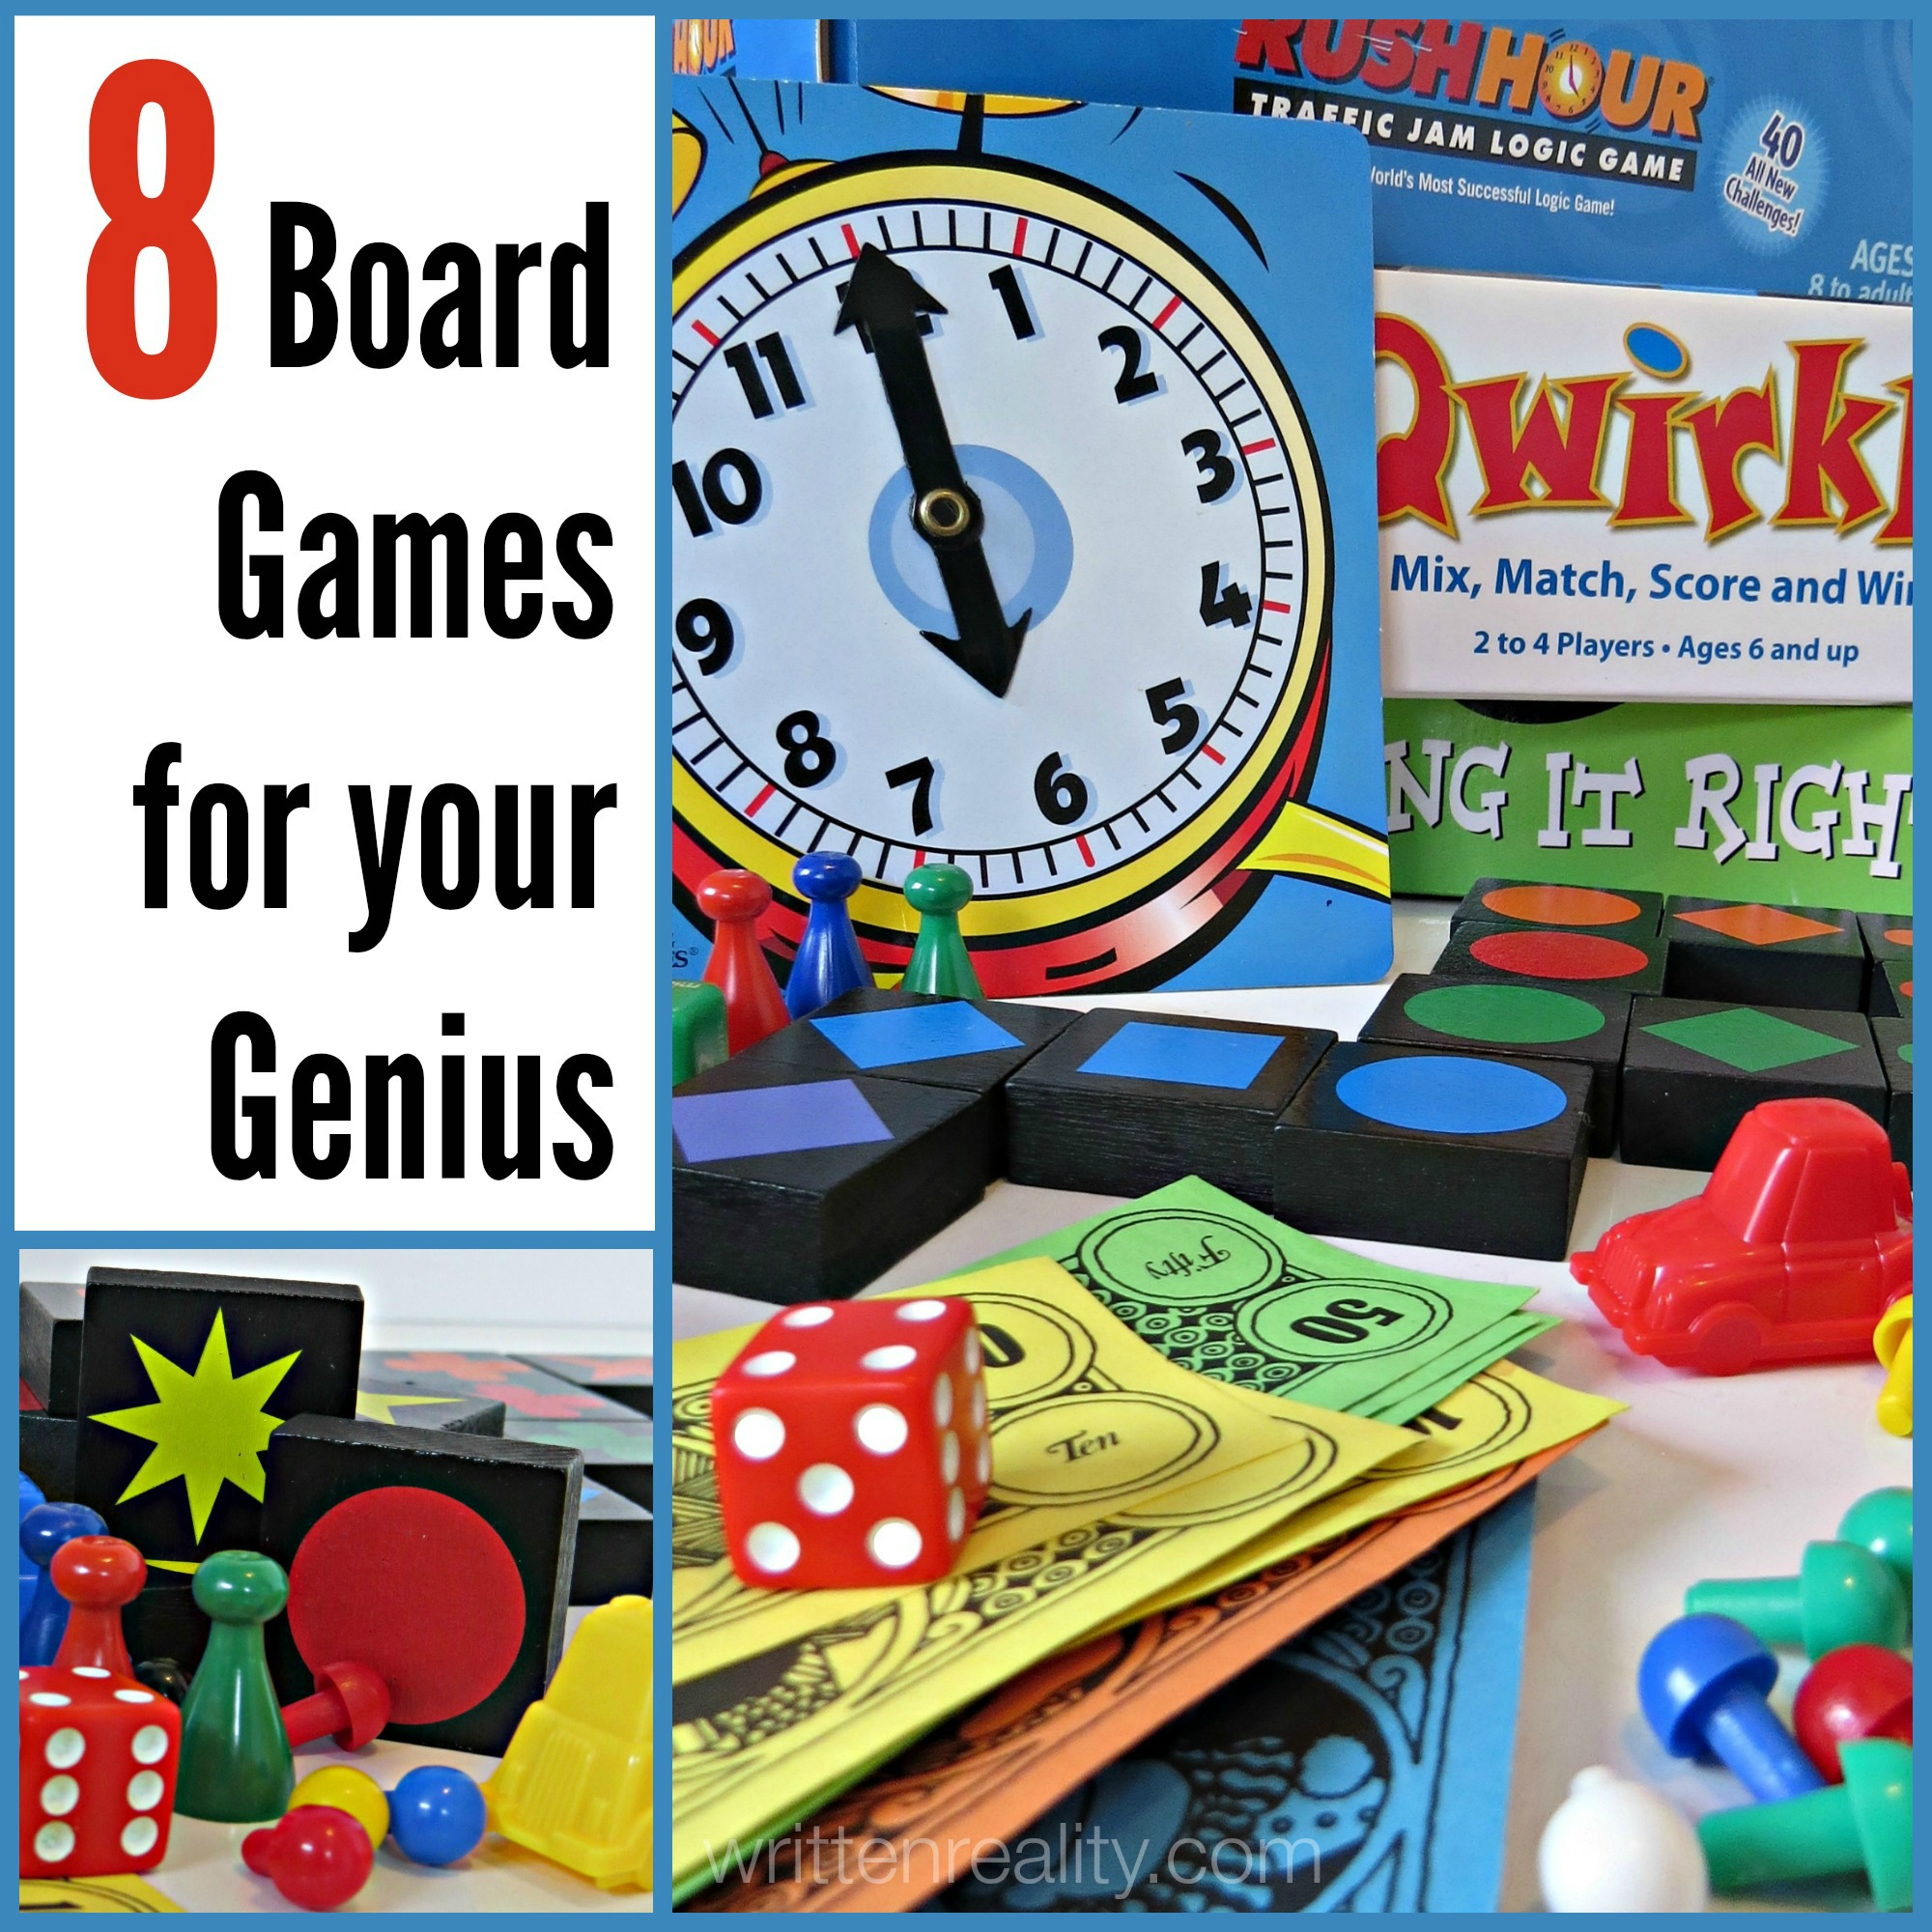 8 Board Games for Your Genius Written Reality